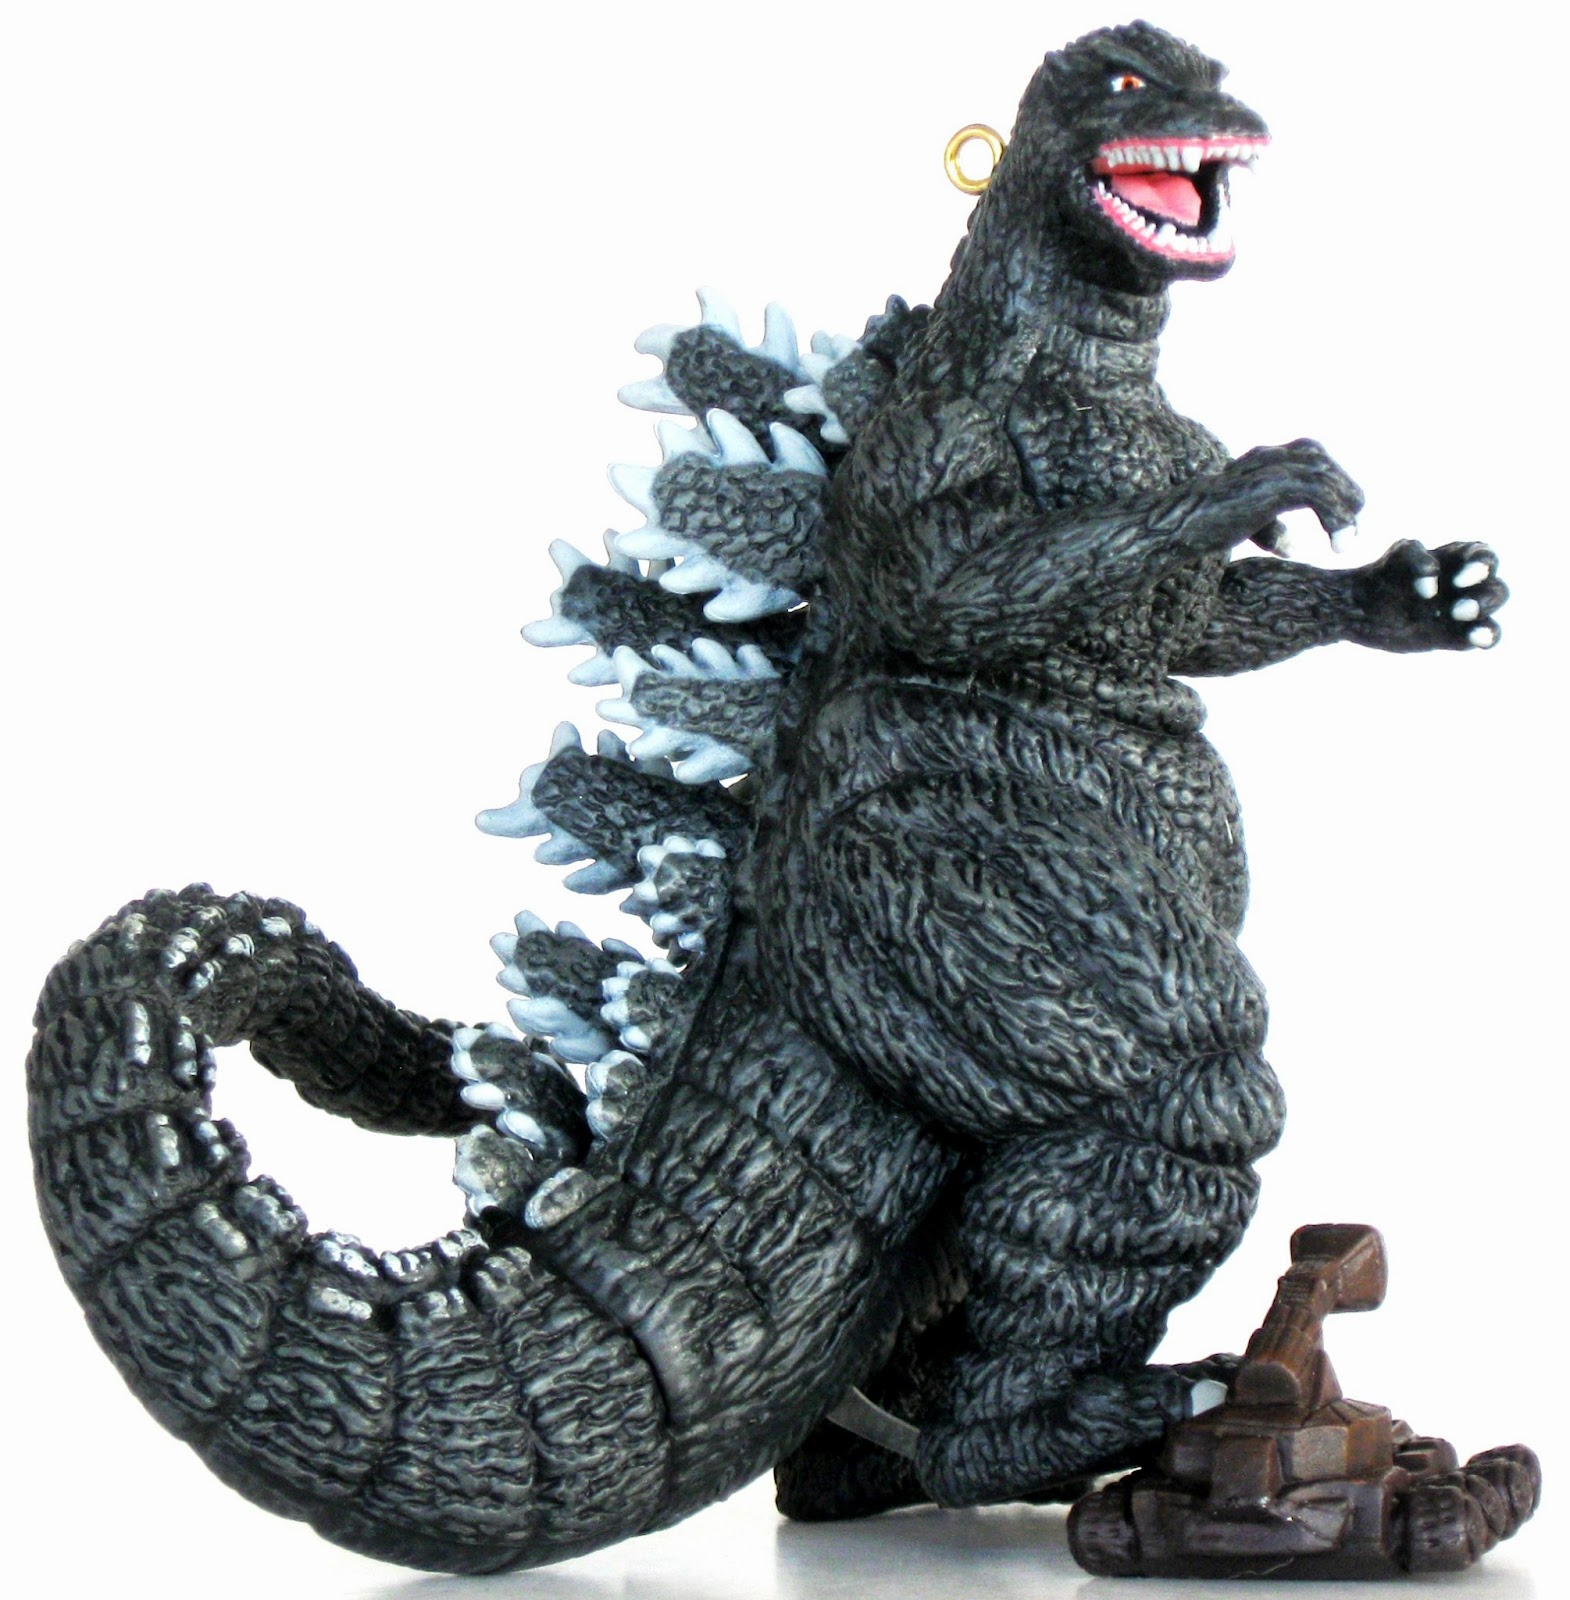 Toys and stuff american greetings 2012 godzilla ornament w sound tree ornament from american greetings which was released last year its a nice little rendition of the big guy and so without further ado enjoy kristyandbryce Image collections